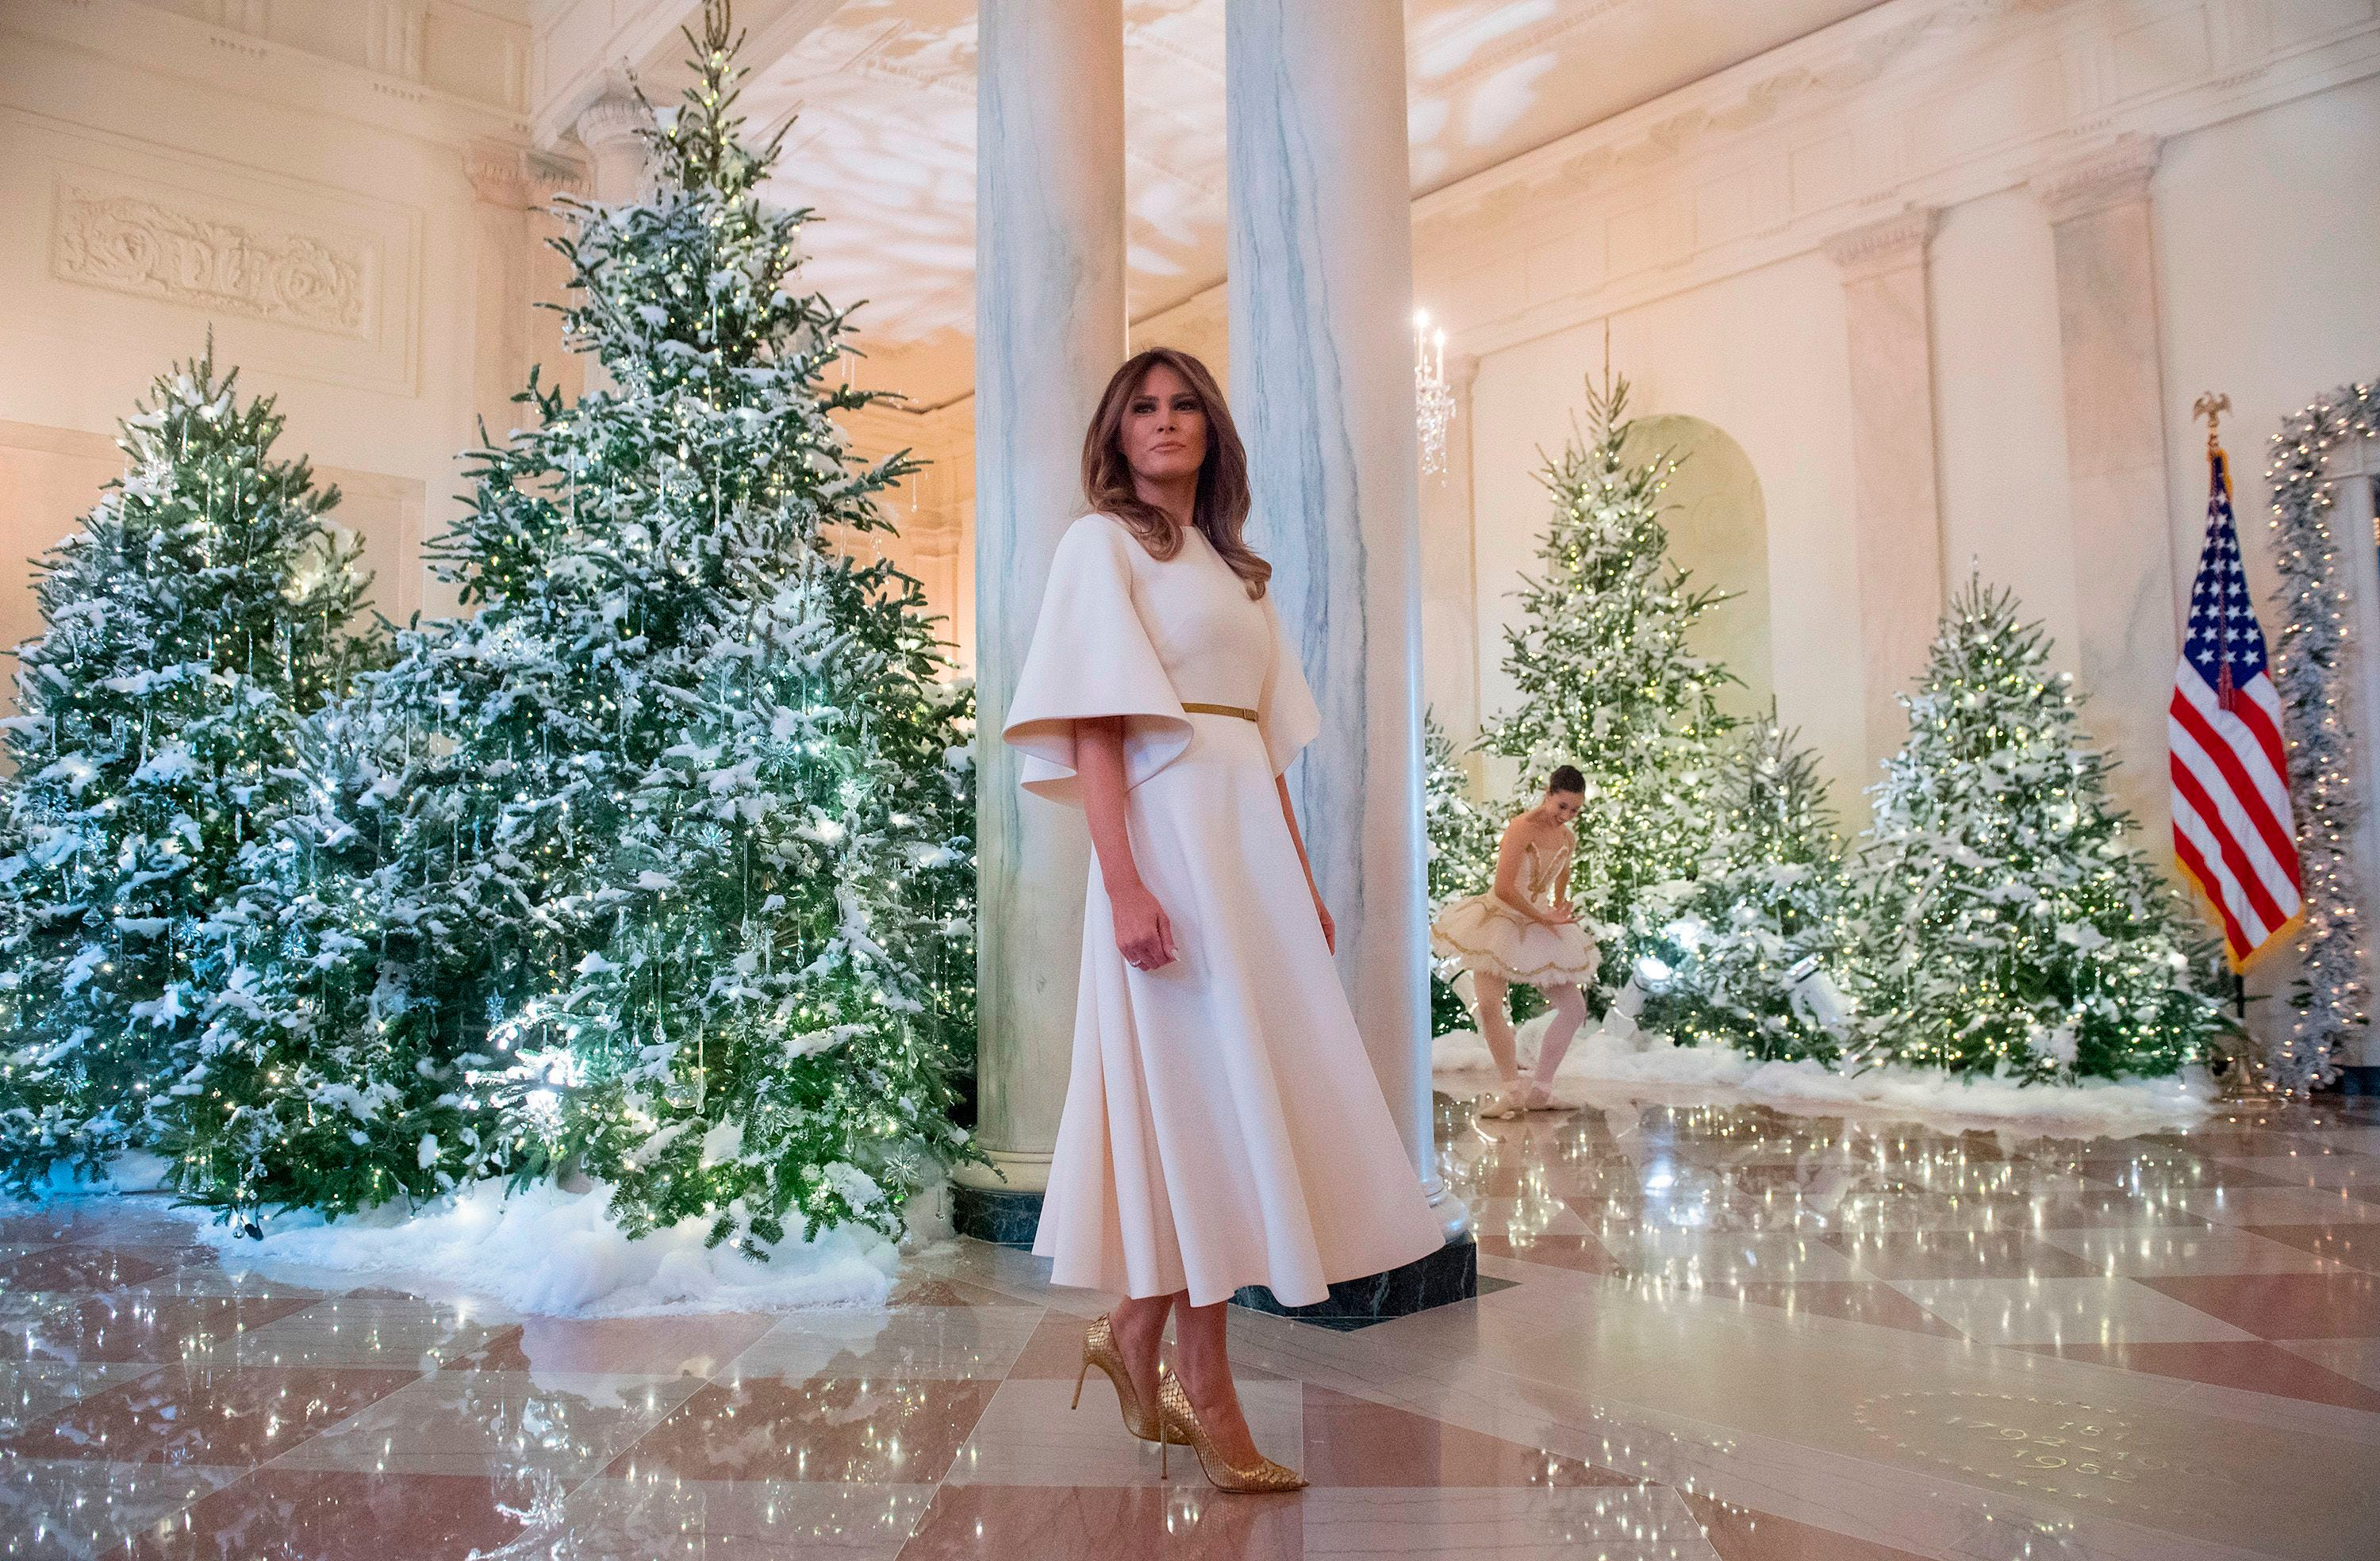 Where Is President Trump Spending Christmas 2020 Melania Trump's Christmas decorating curse leaks, Twitter reacts